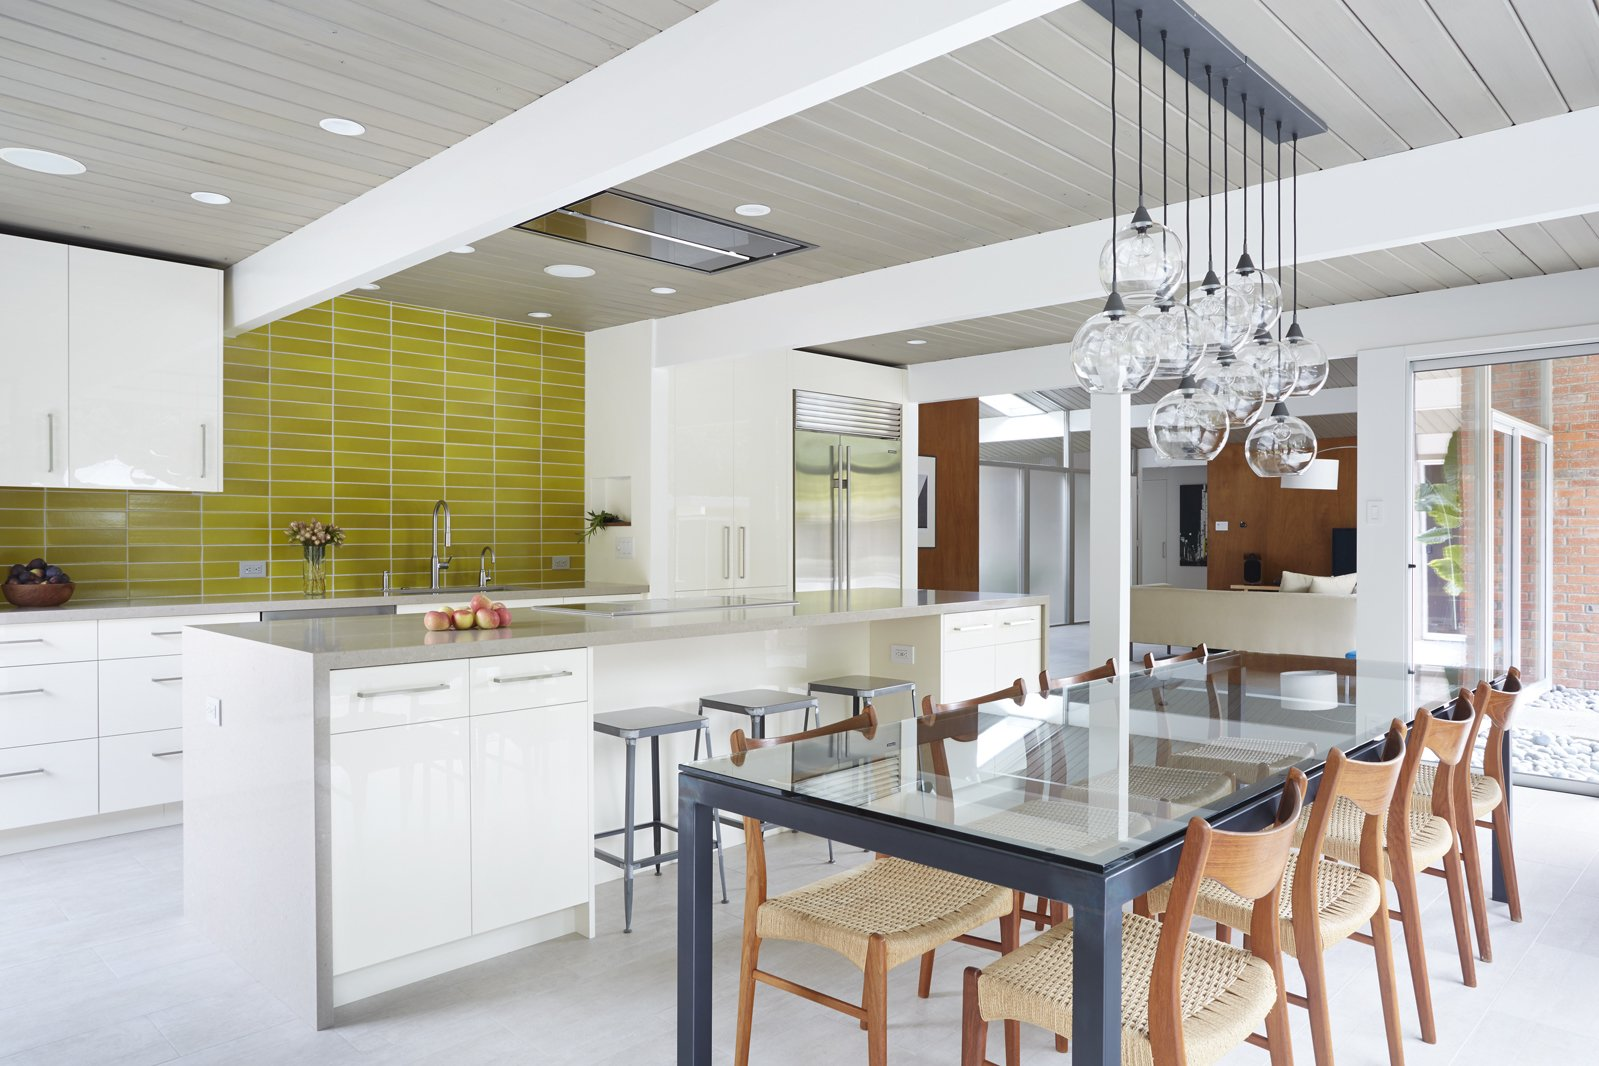 Renovated Eichler Kitchen and Dining Space  Photo 6 of 12 in How the Colors in Your Kitchen Affect Your Appetite from Northern California Eichler